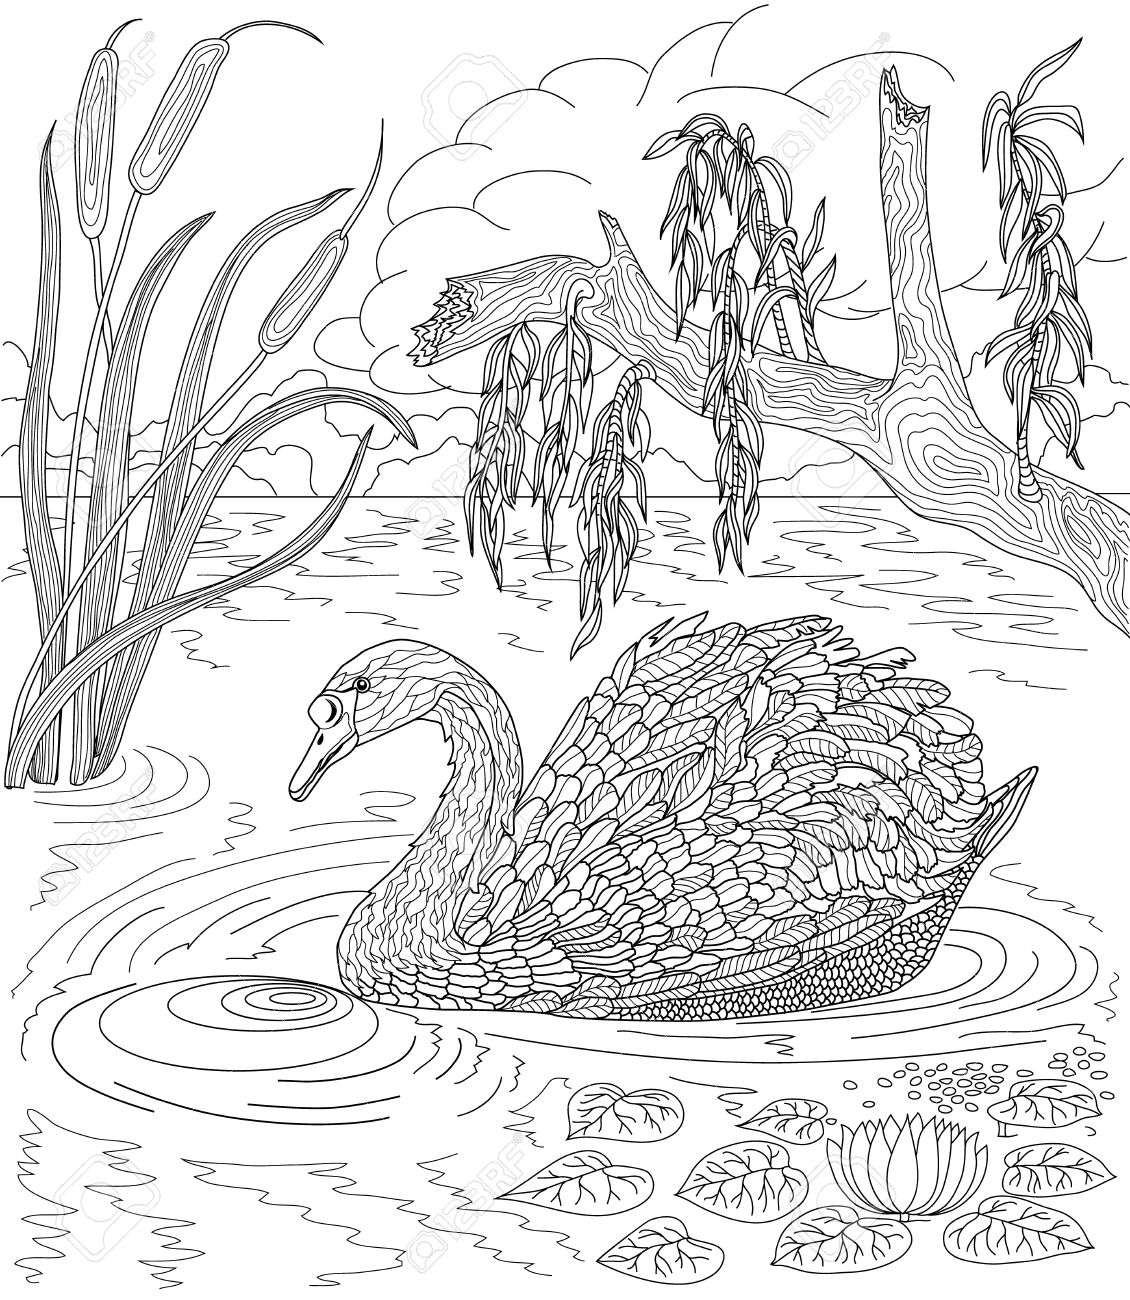 water coloring pages for adults - lake taupo coloring download lake taupo coloring